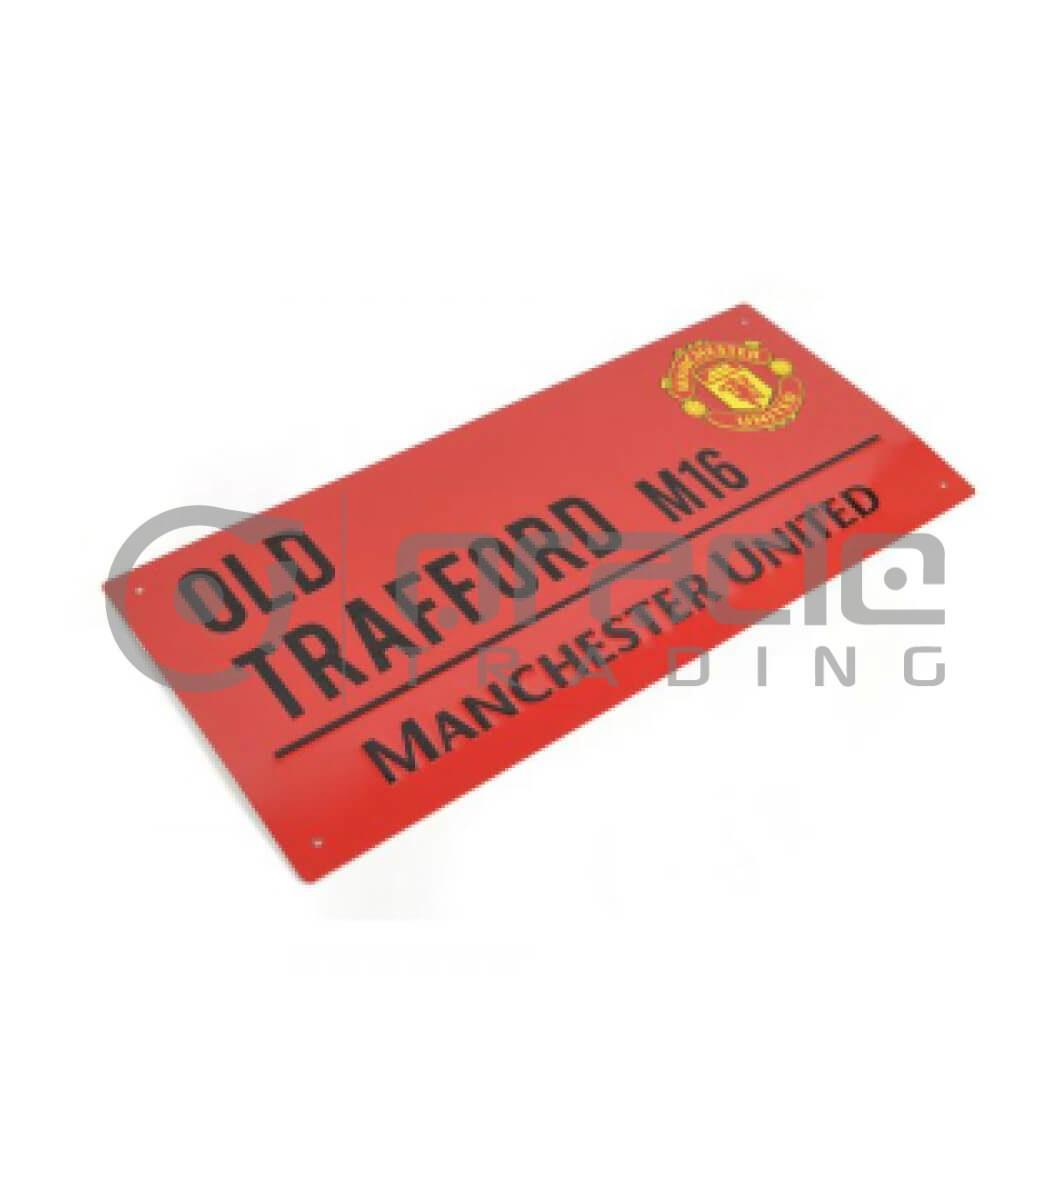 Manchester United Street Sign - Red